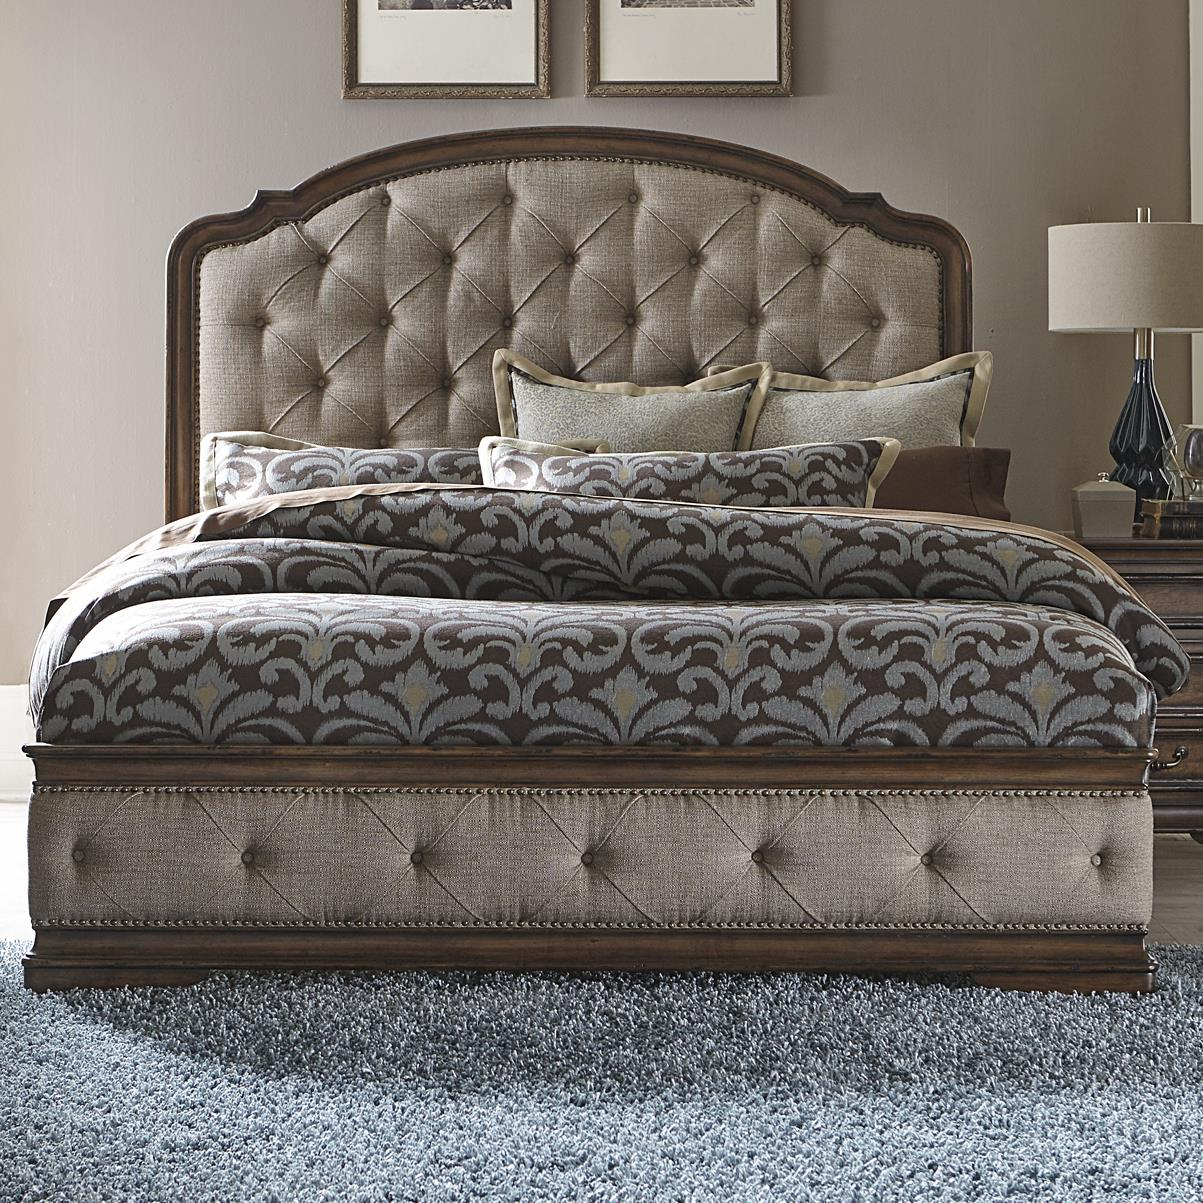 Liberty Furniture Amelia Traditional King Upholstered Bed